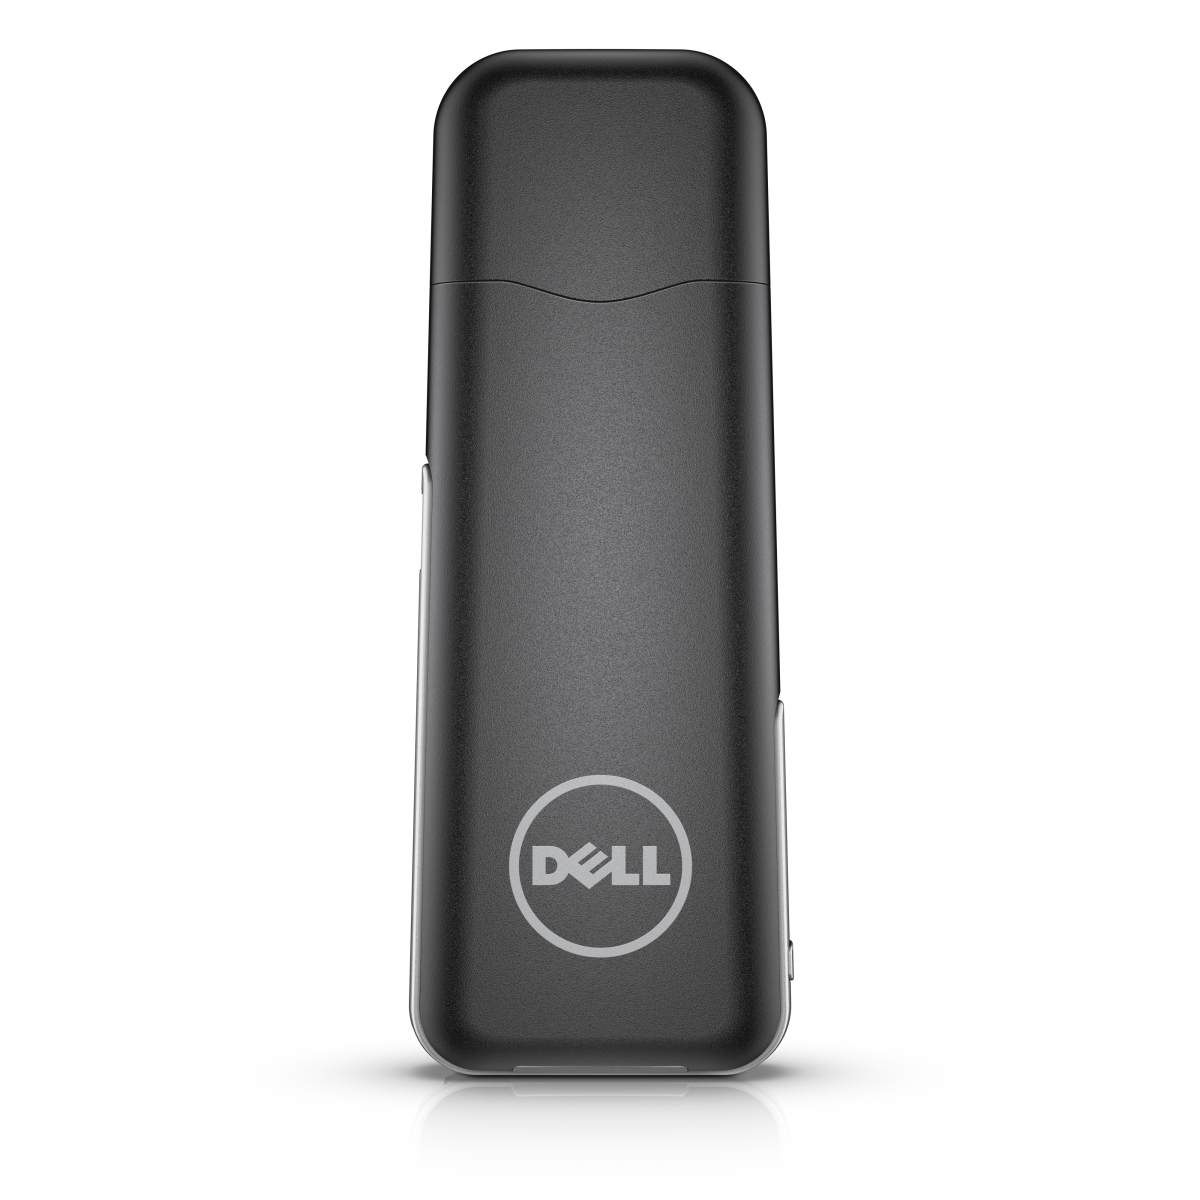 Dell Wyse Cloud Connect Goes Live To Keep The Cloud In